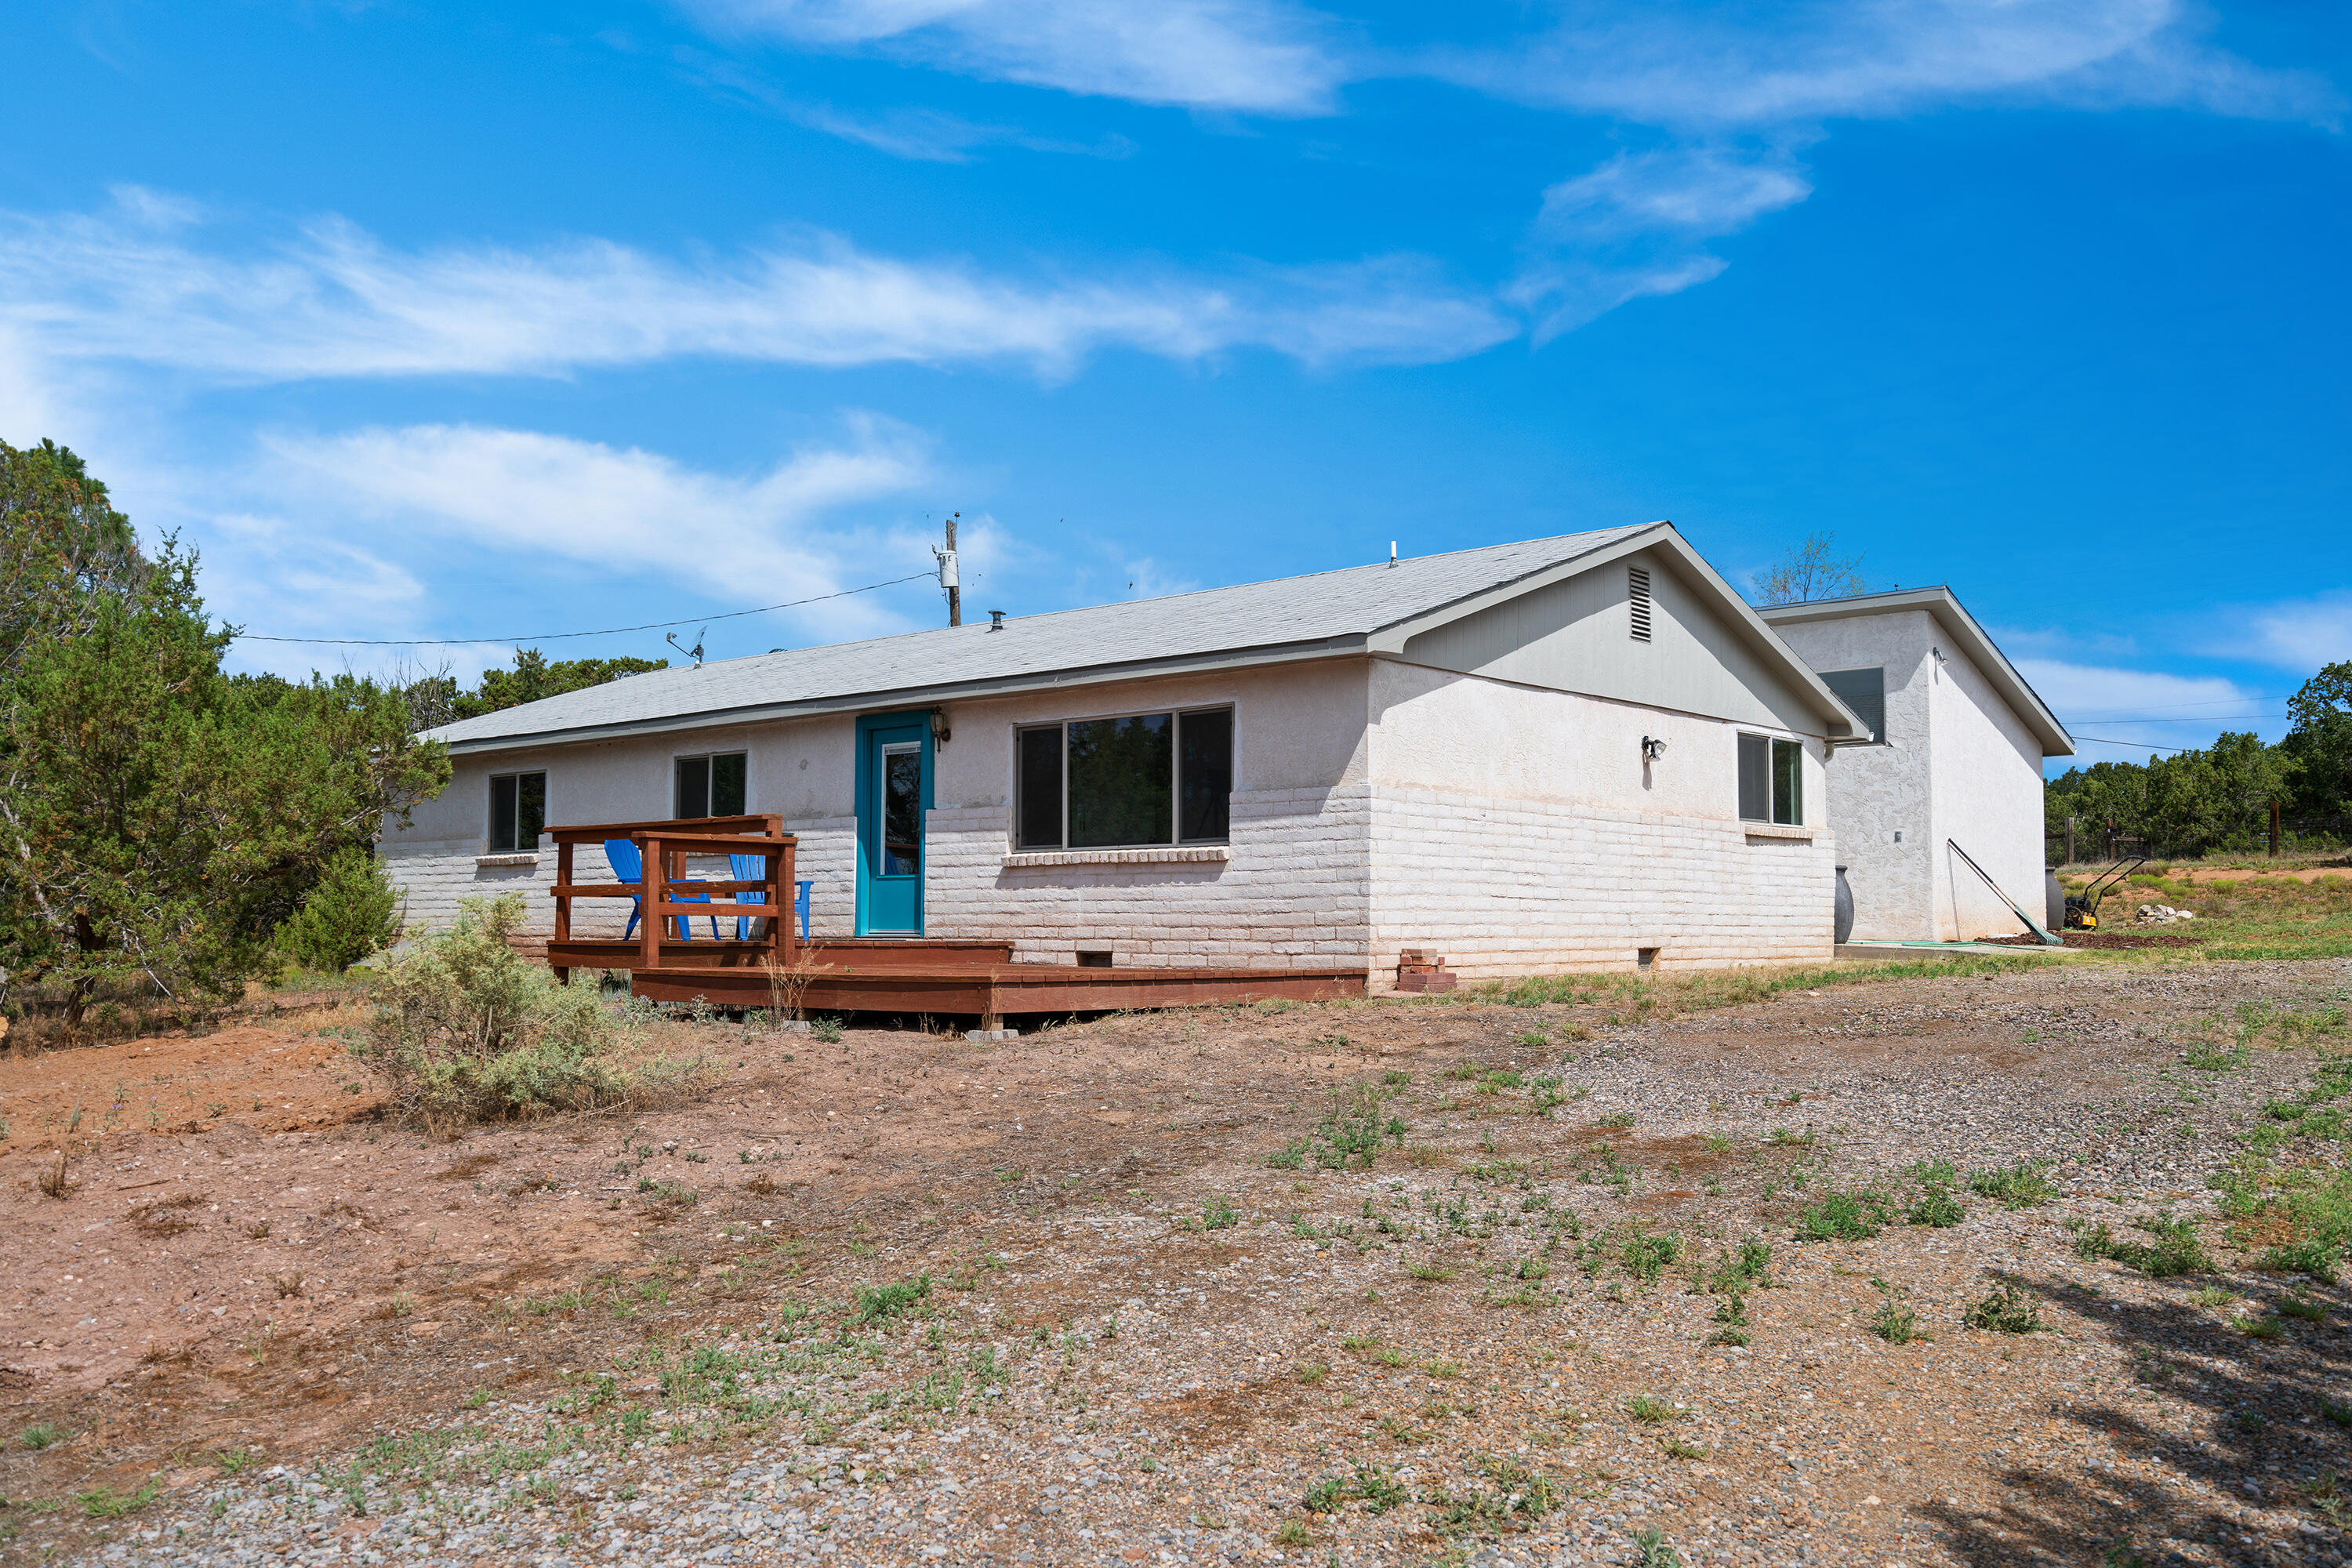 Beautifully updated home in the East Mountains. Spacious open floorplan on 2 aces  wooded views.  porch, rustic  Dining area and breakfast area in kitchen with island. Laundry room.  large main suite, and beautiful laminate flooring throughout. This property offers plenty of space to add additional storage and or a barn. come see this one today.